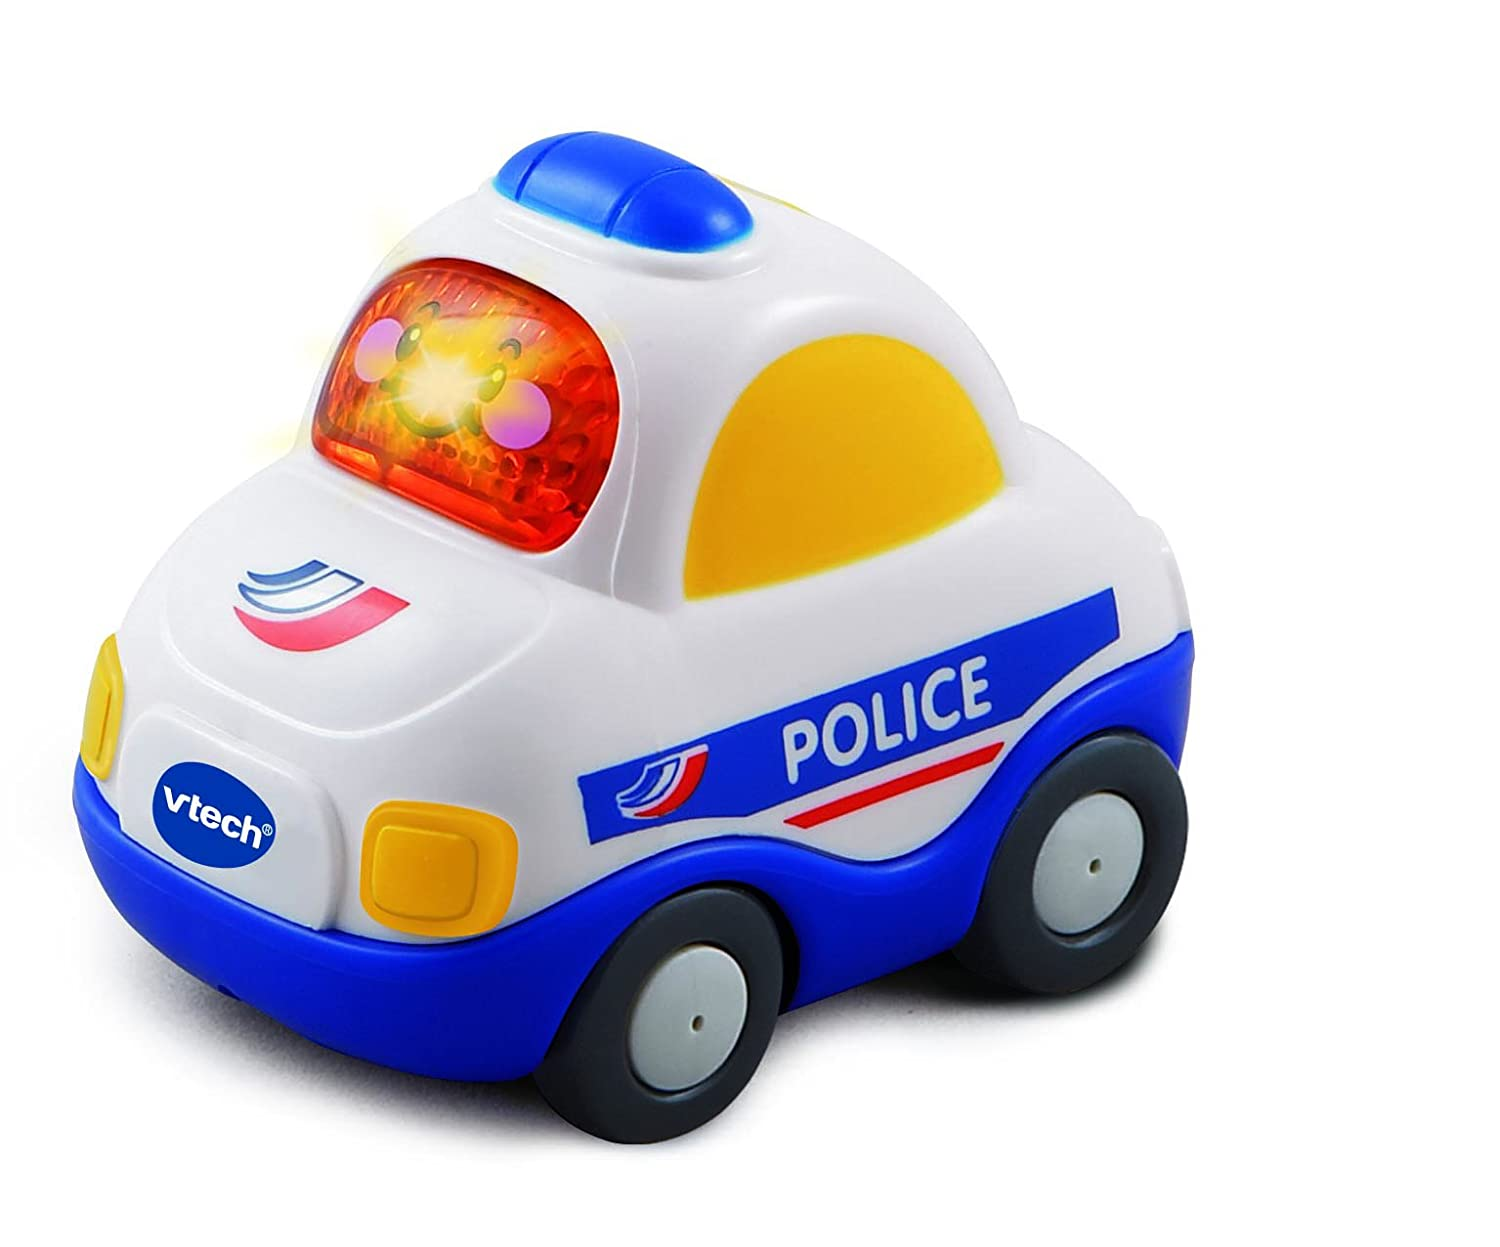 Police 202415 Attention Vtech Vtech Mathis hrsCQtd